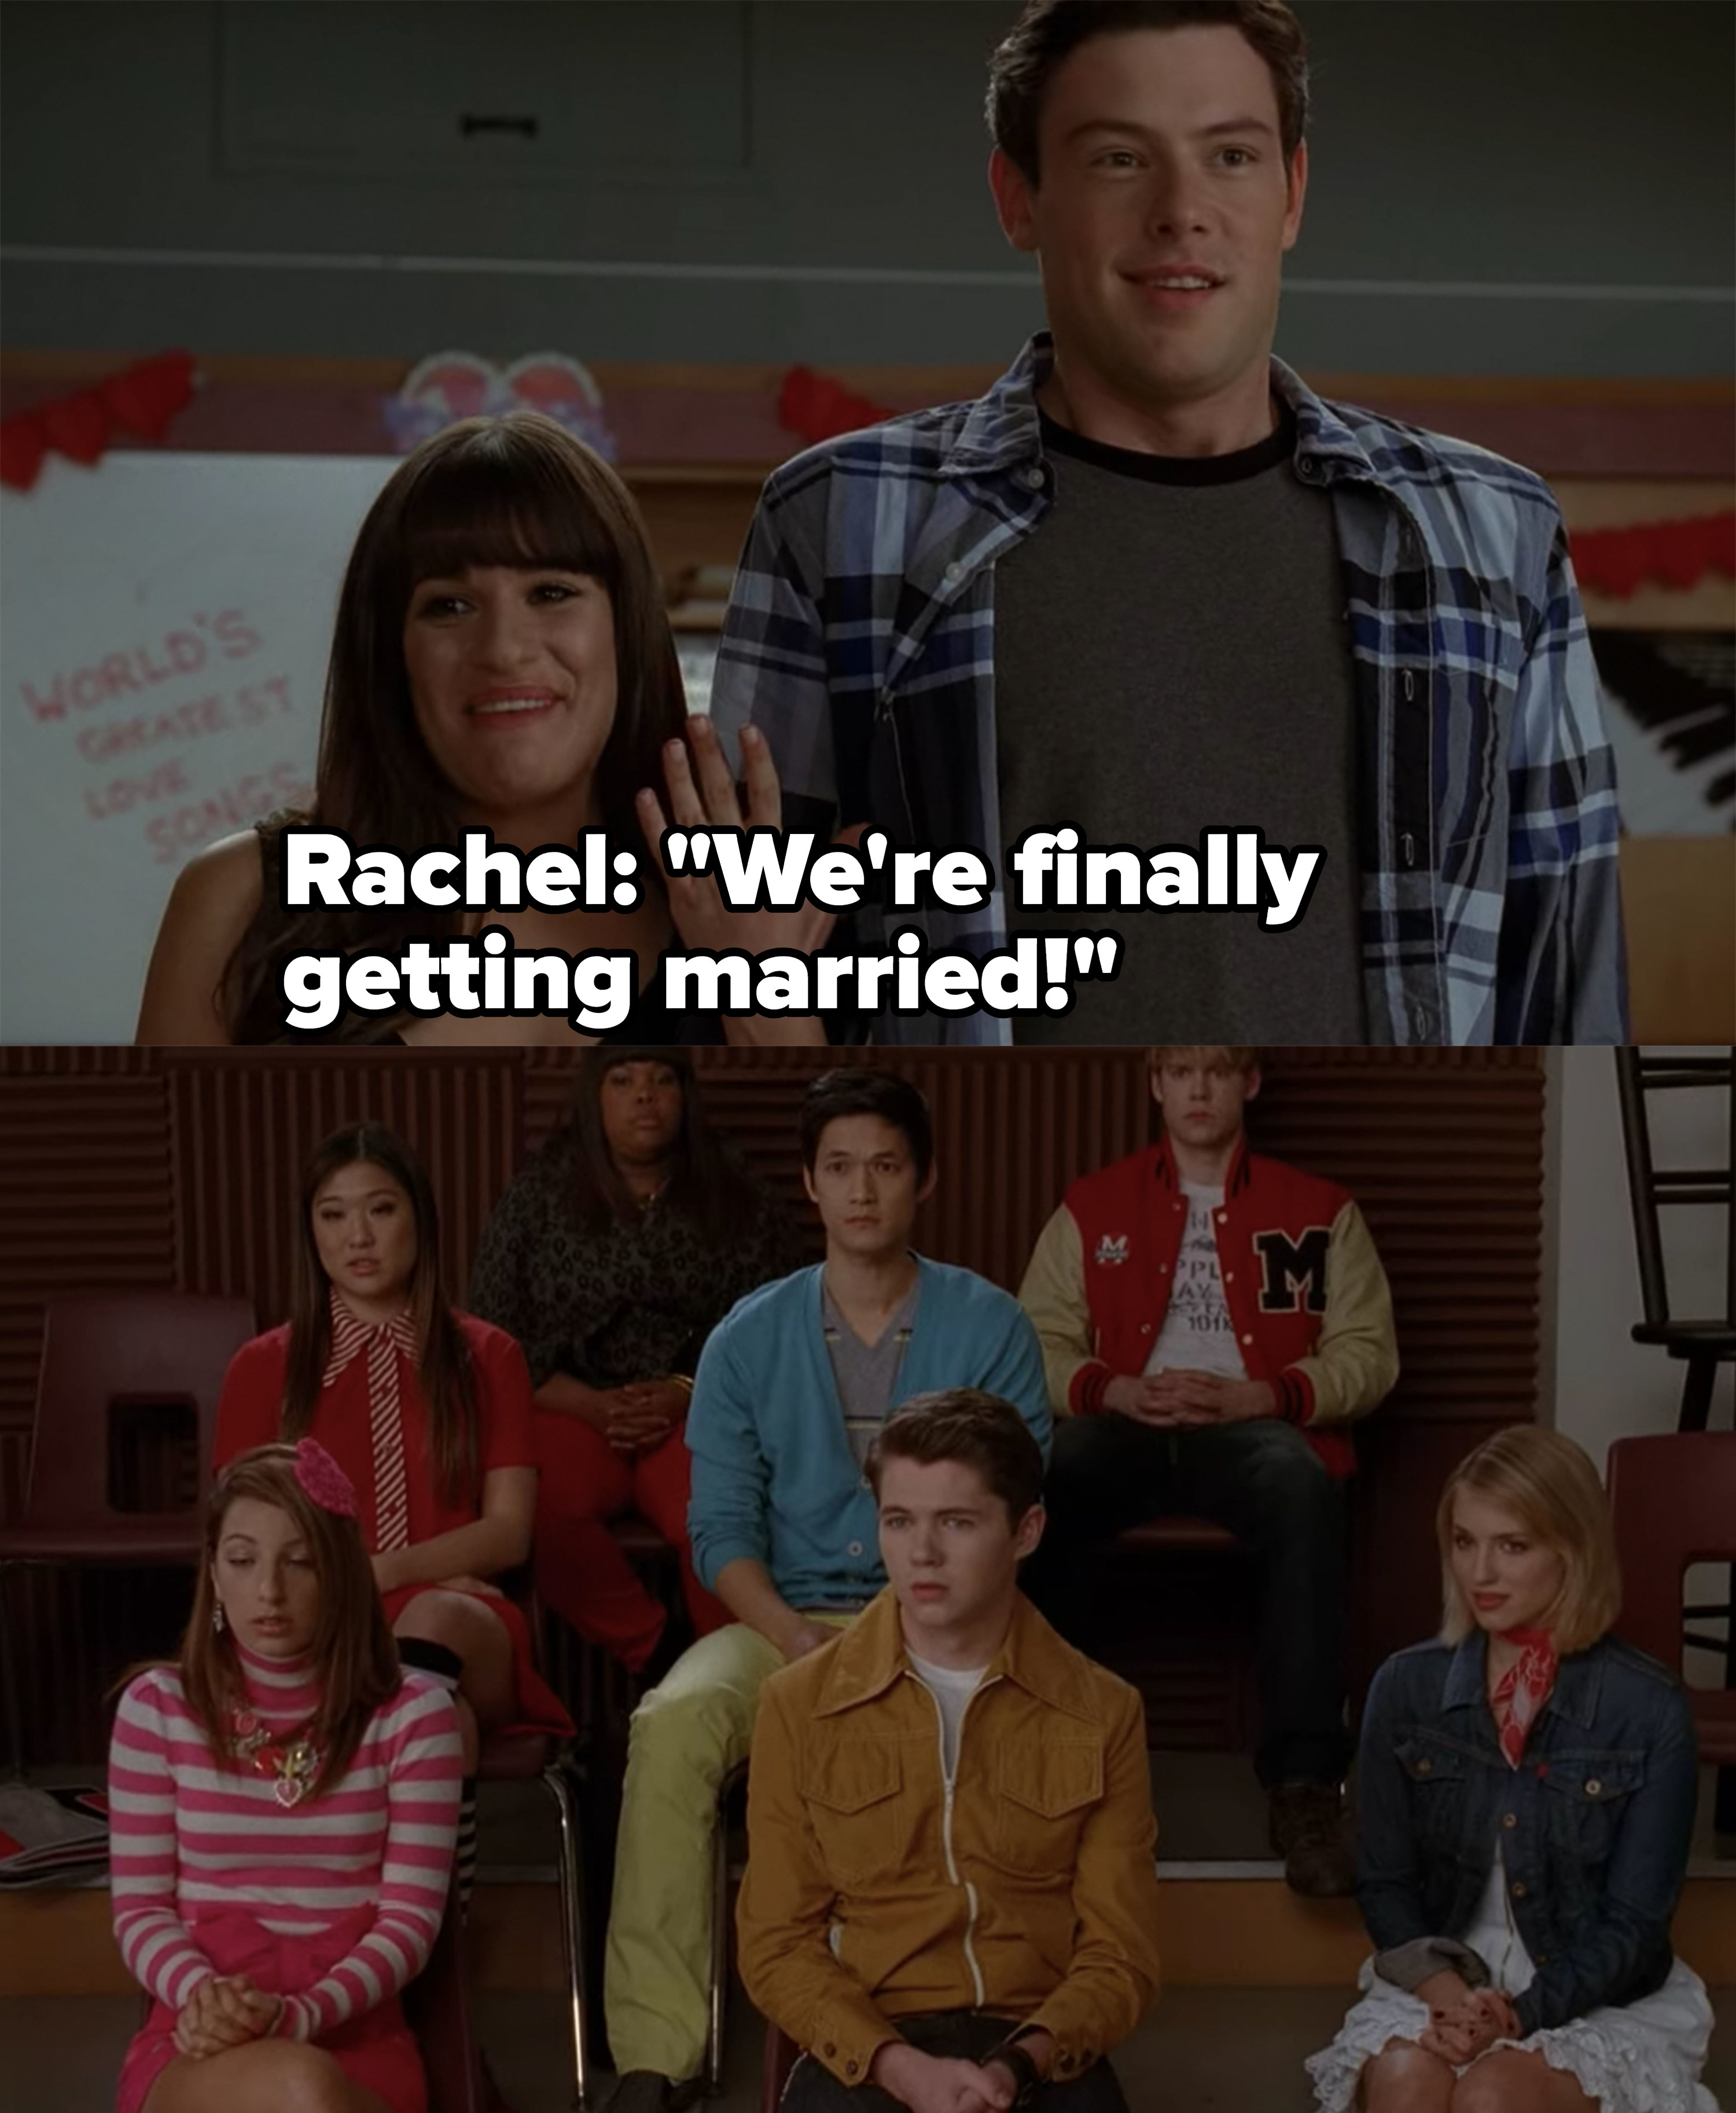 """Rachel tells the Glee club she and Finn are """"finally getting married,"""" everyone just stares awkwardly"""